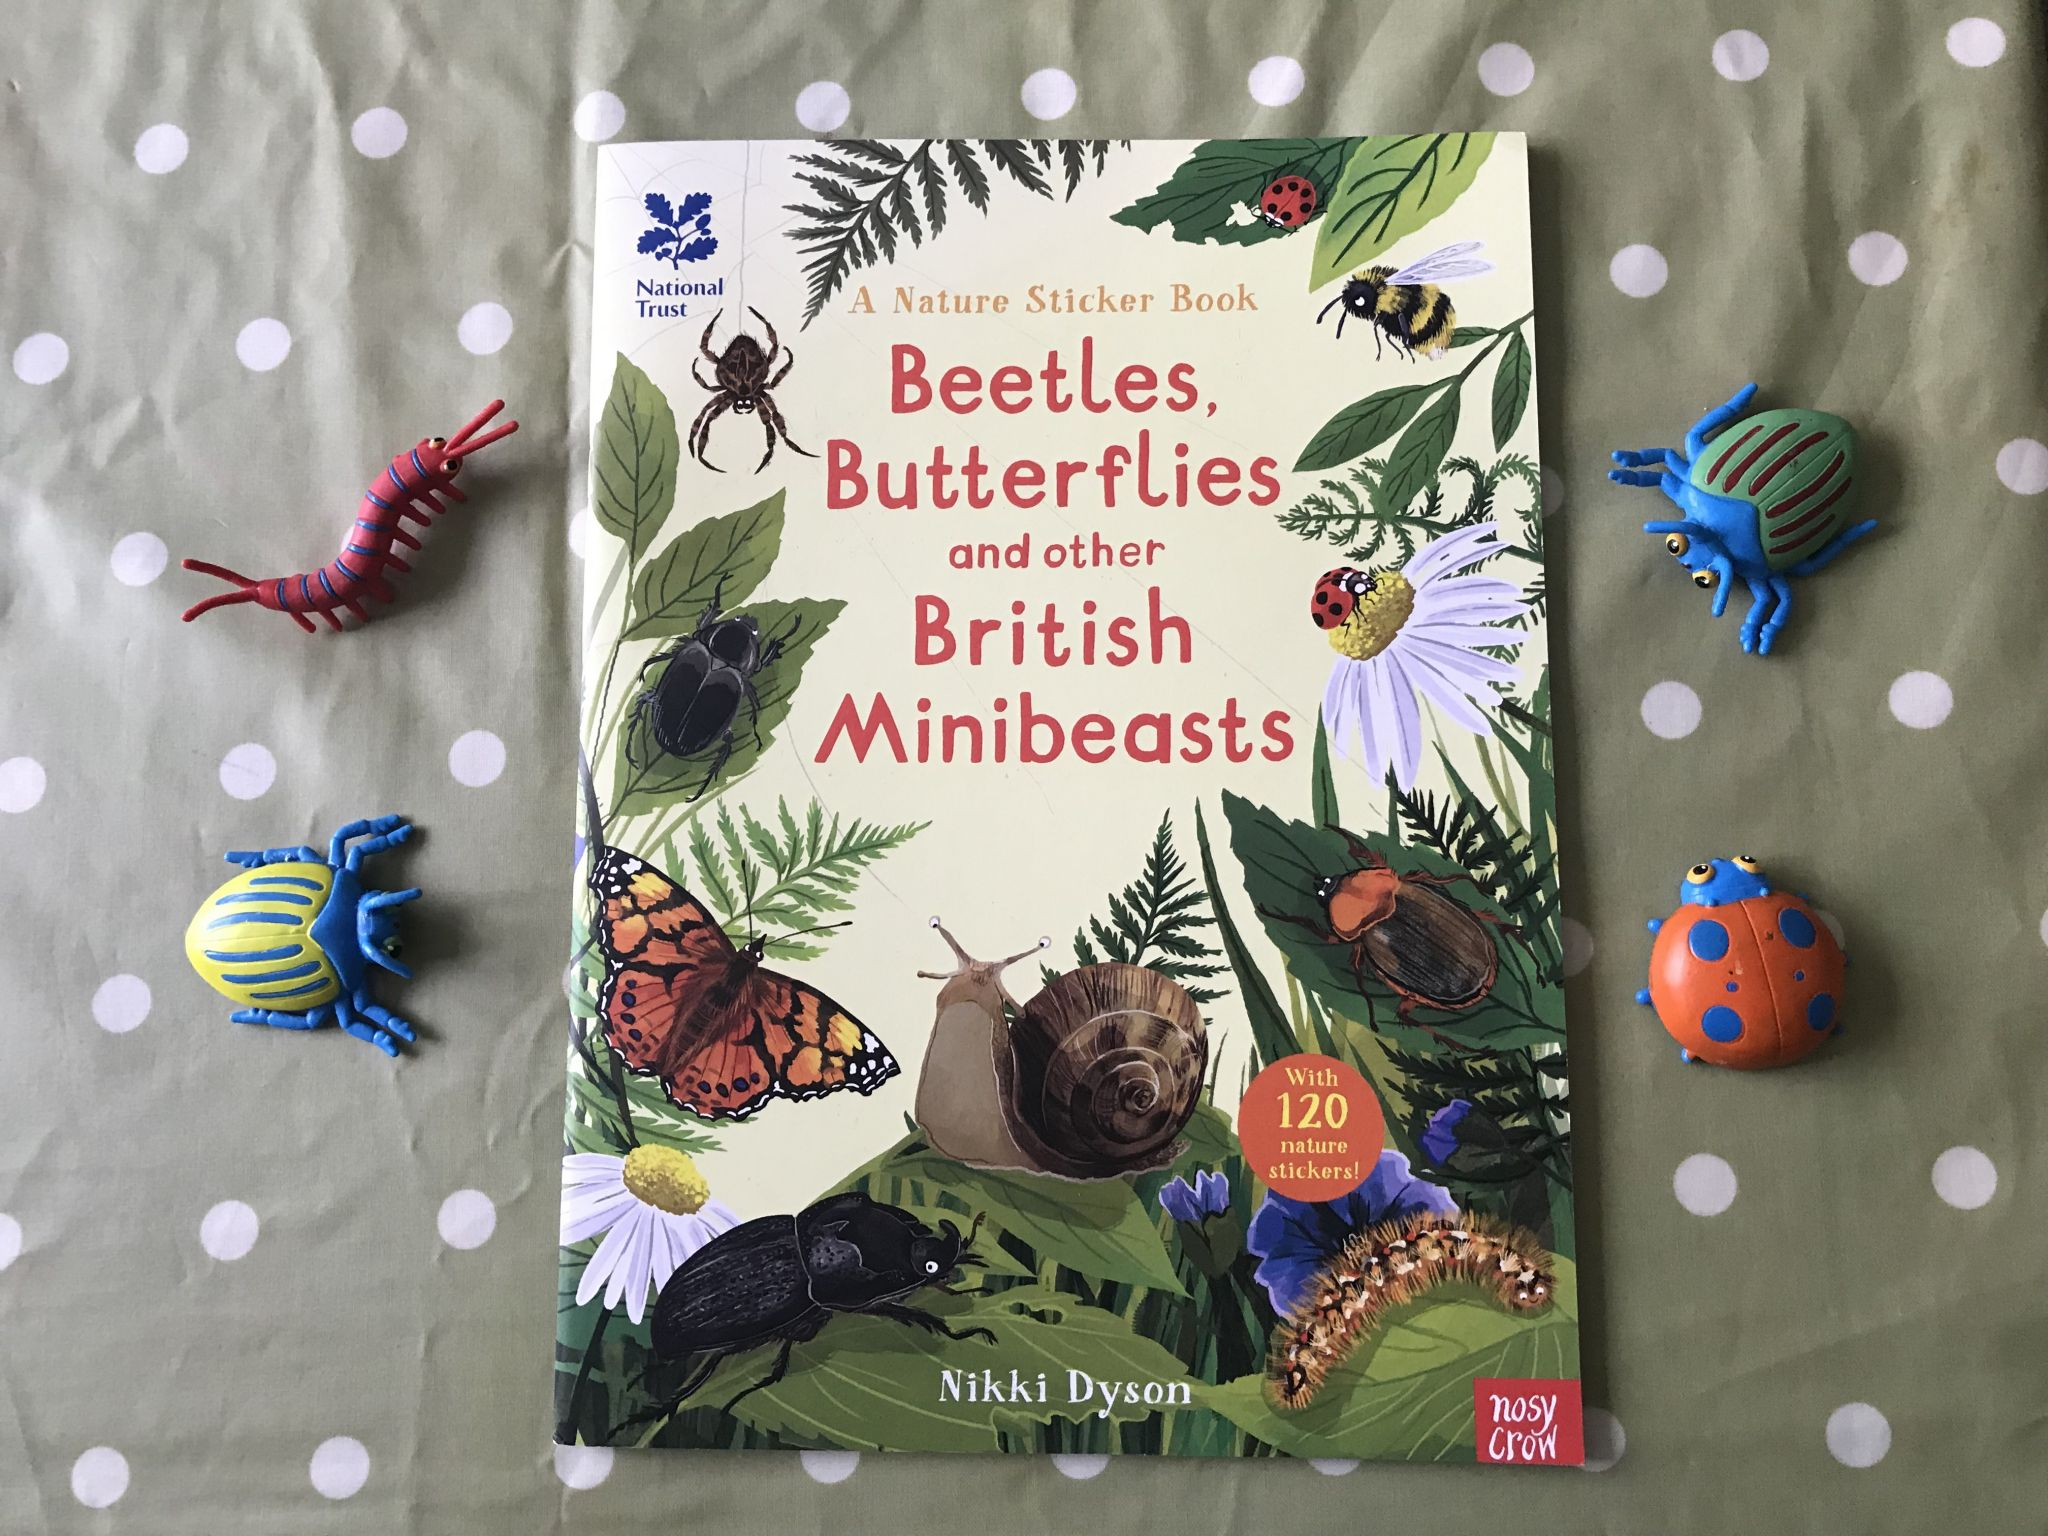 a flatly photo of a bugs and beetles sticker book with some plastic bugs